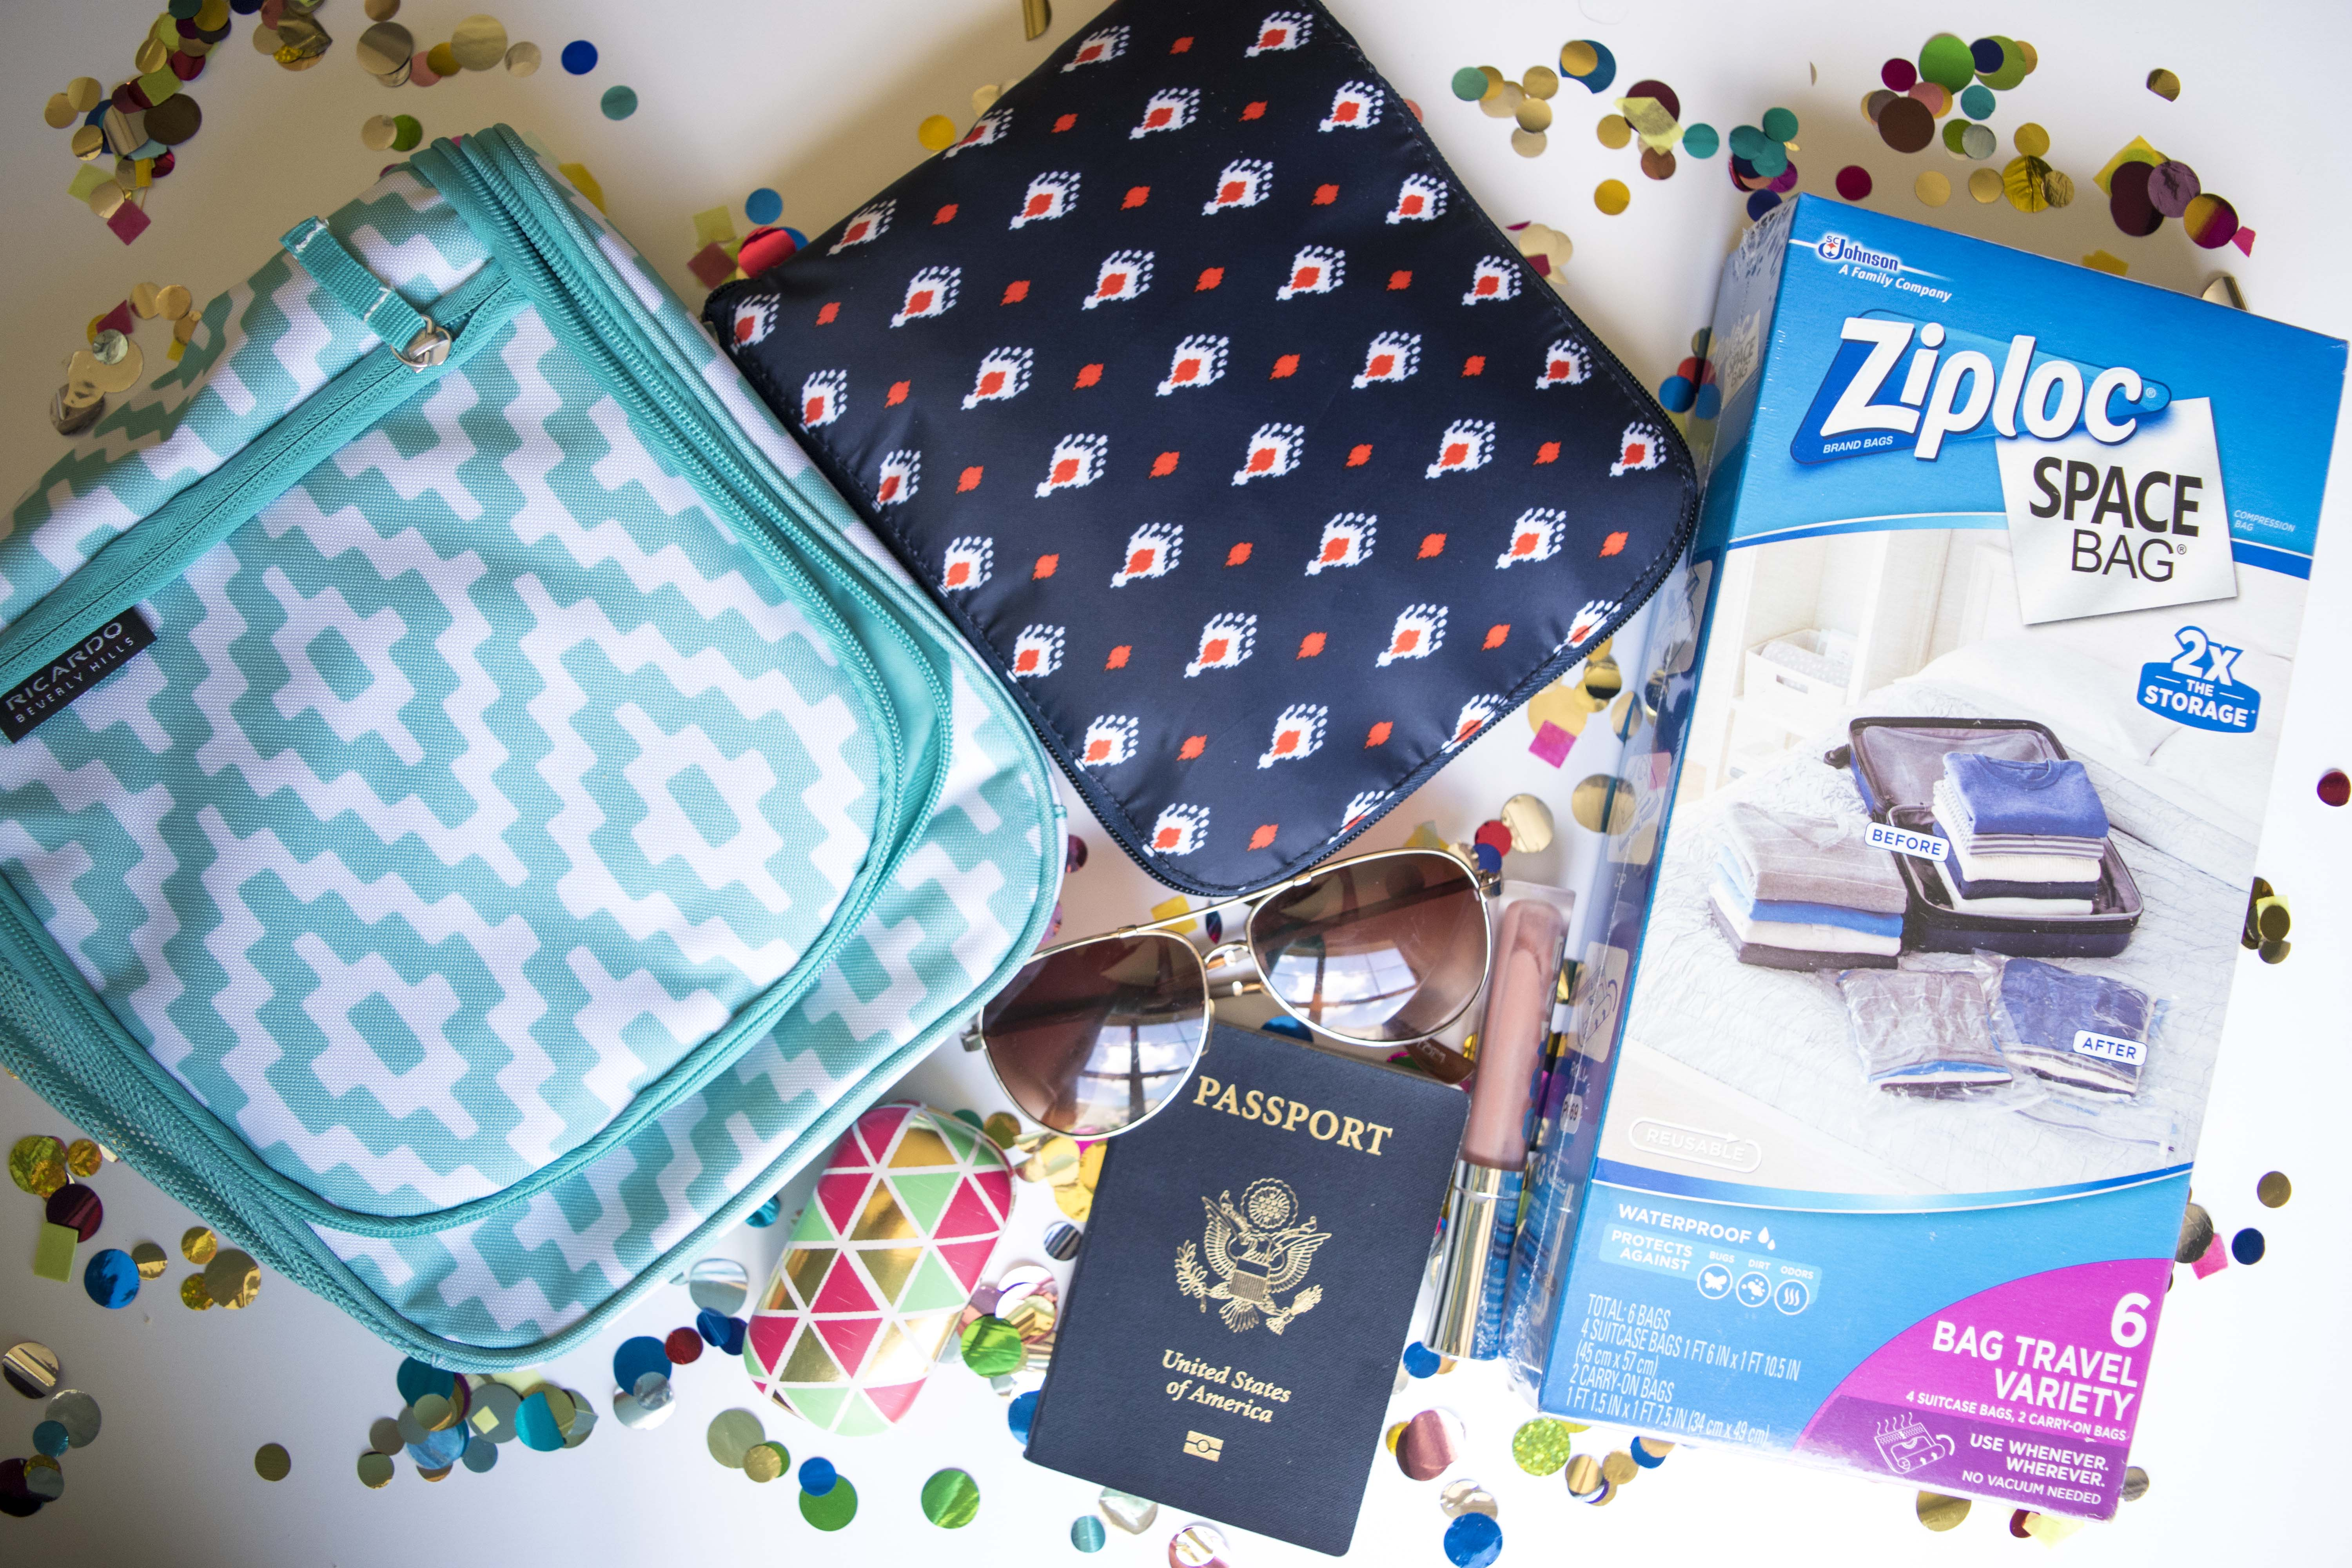 My awesome study abroad essentials from Bed Bath & Beyond! I am loving this expandable duffle bag, toiletry holder and ziploc vacuum bags.